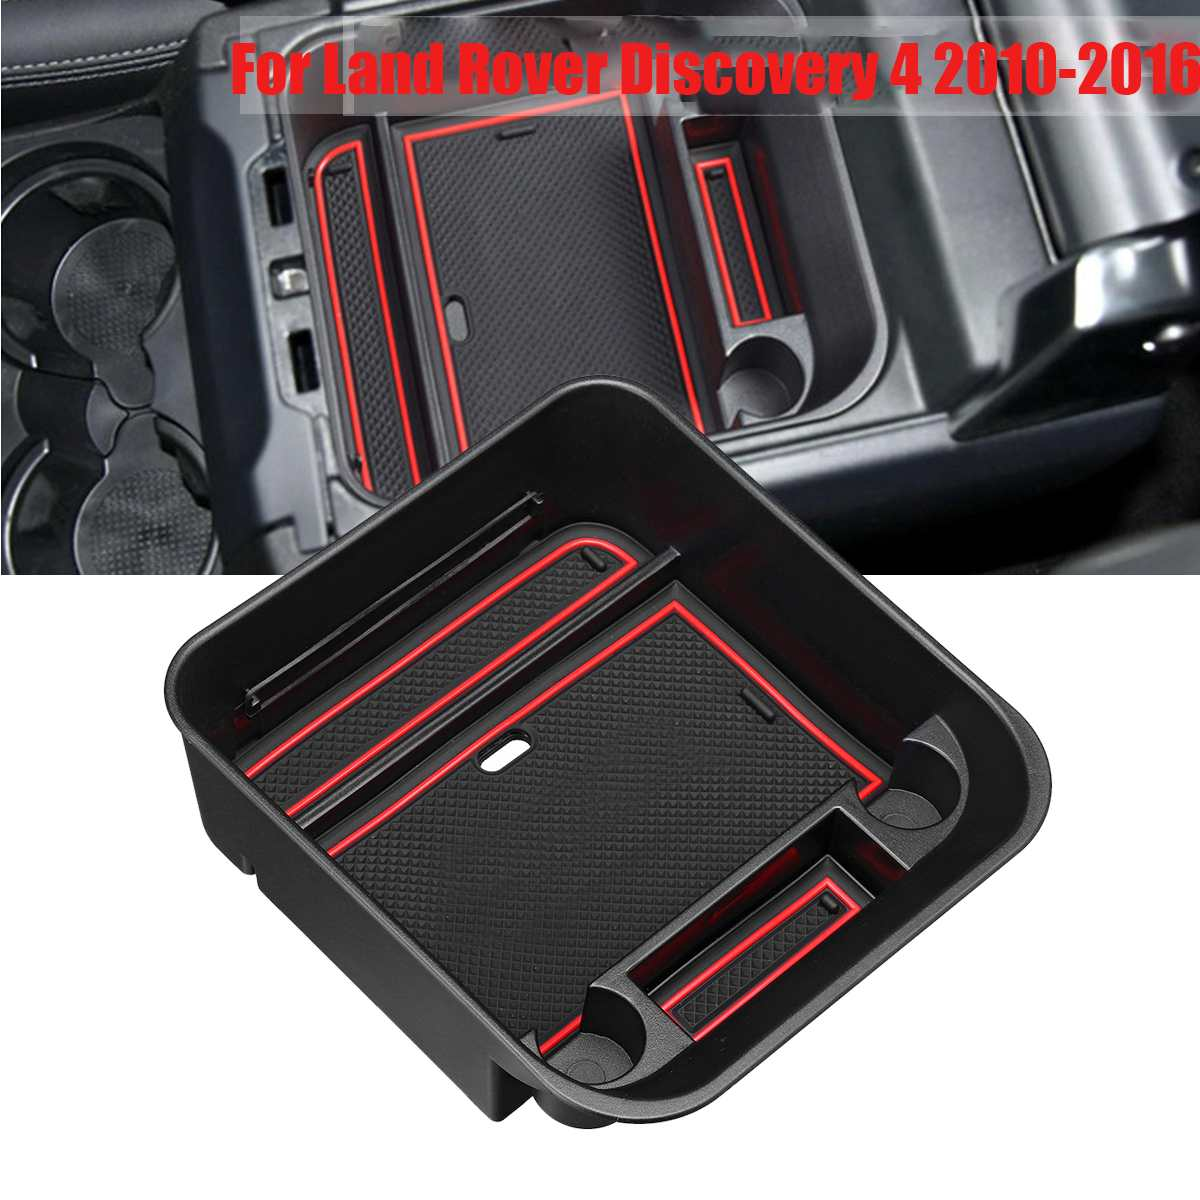 RETYLY Car Organizer Central Car Storage Box Armrest Container Box For Discovery 4 2010-2016 Auto Interior Accessories